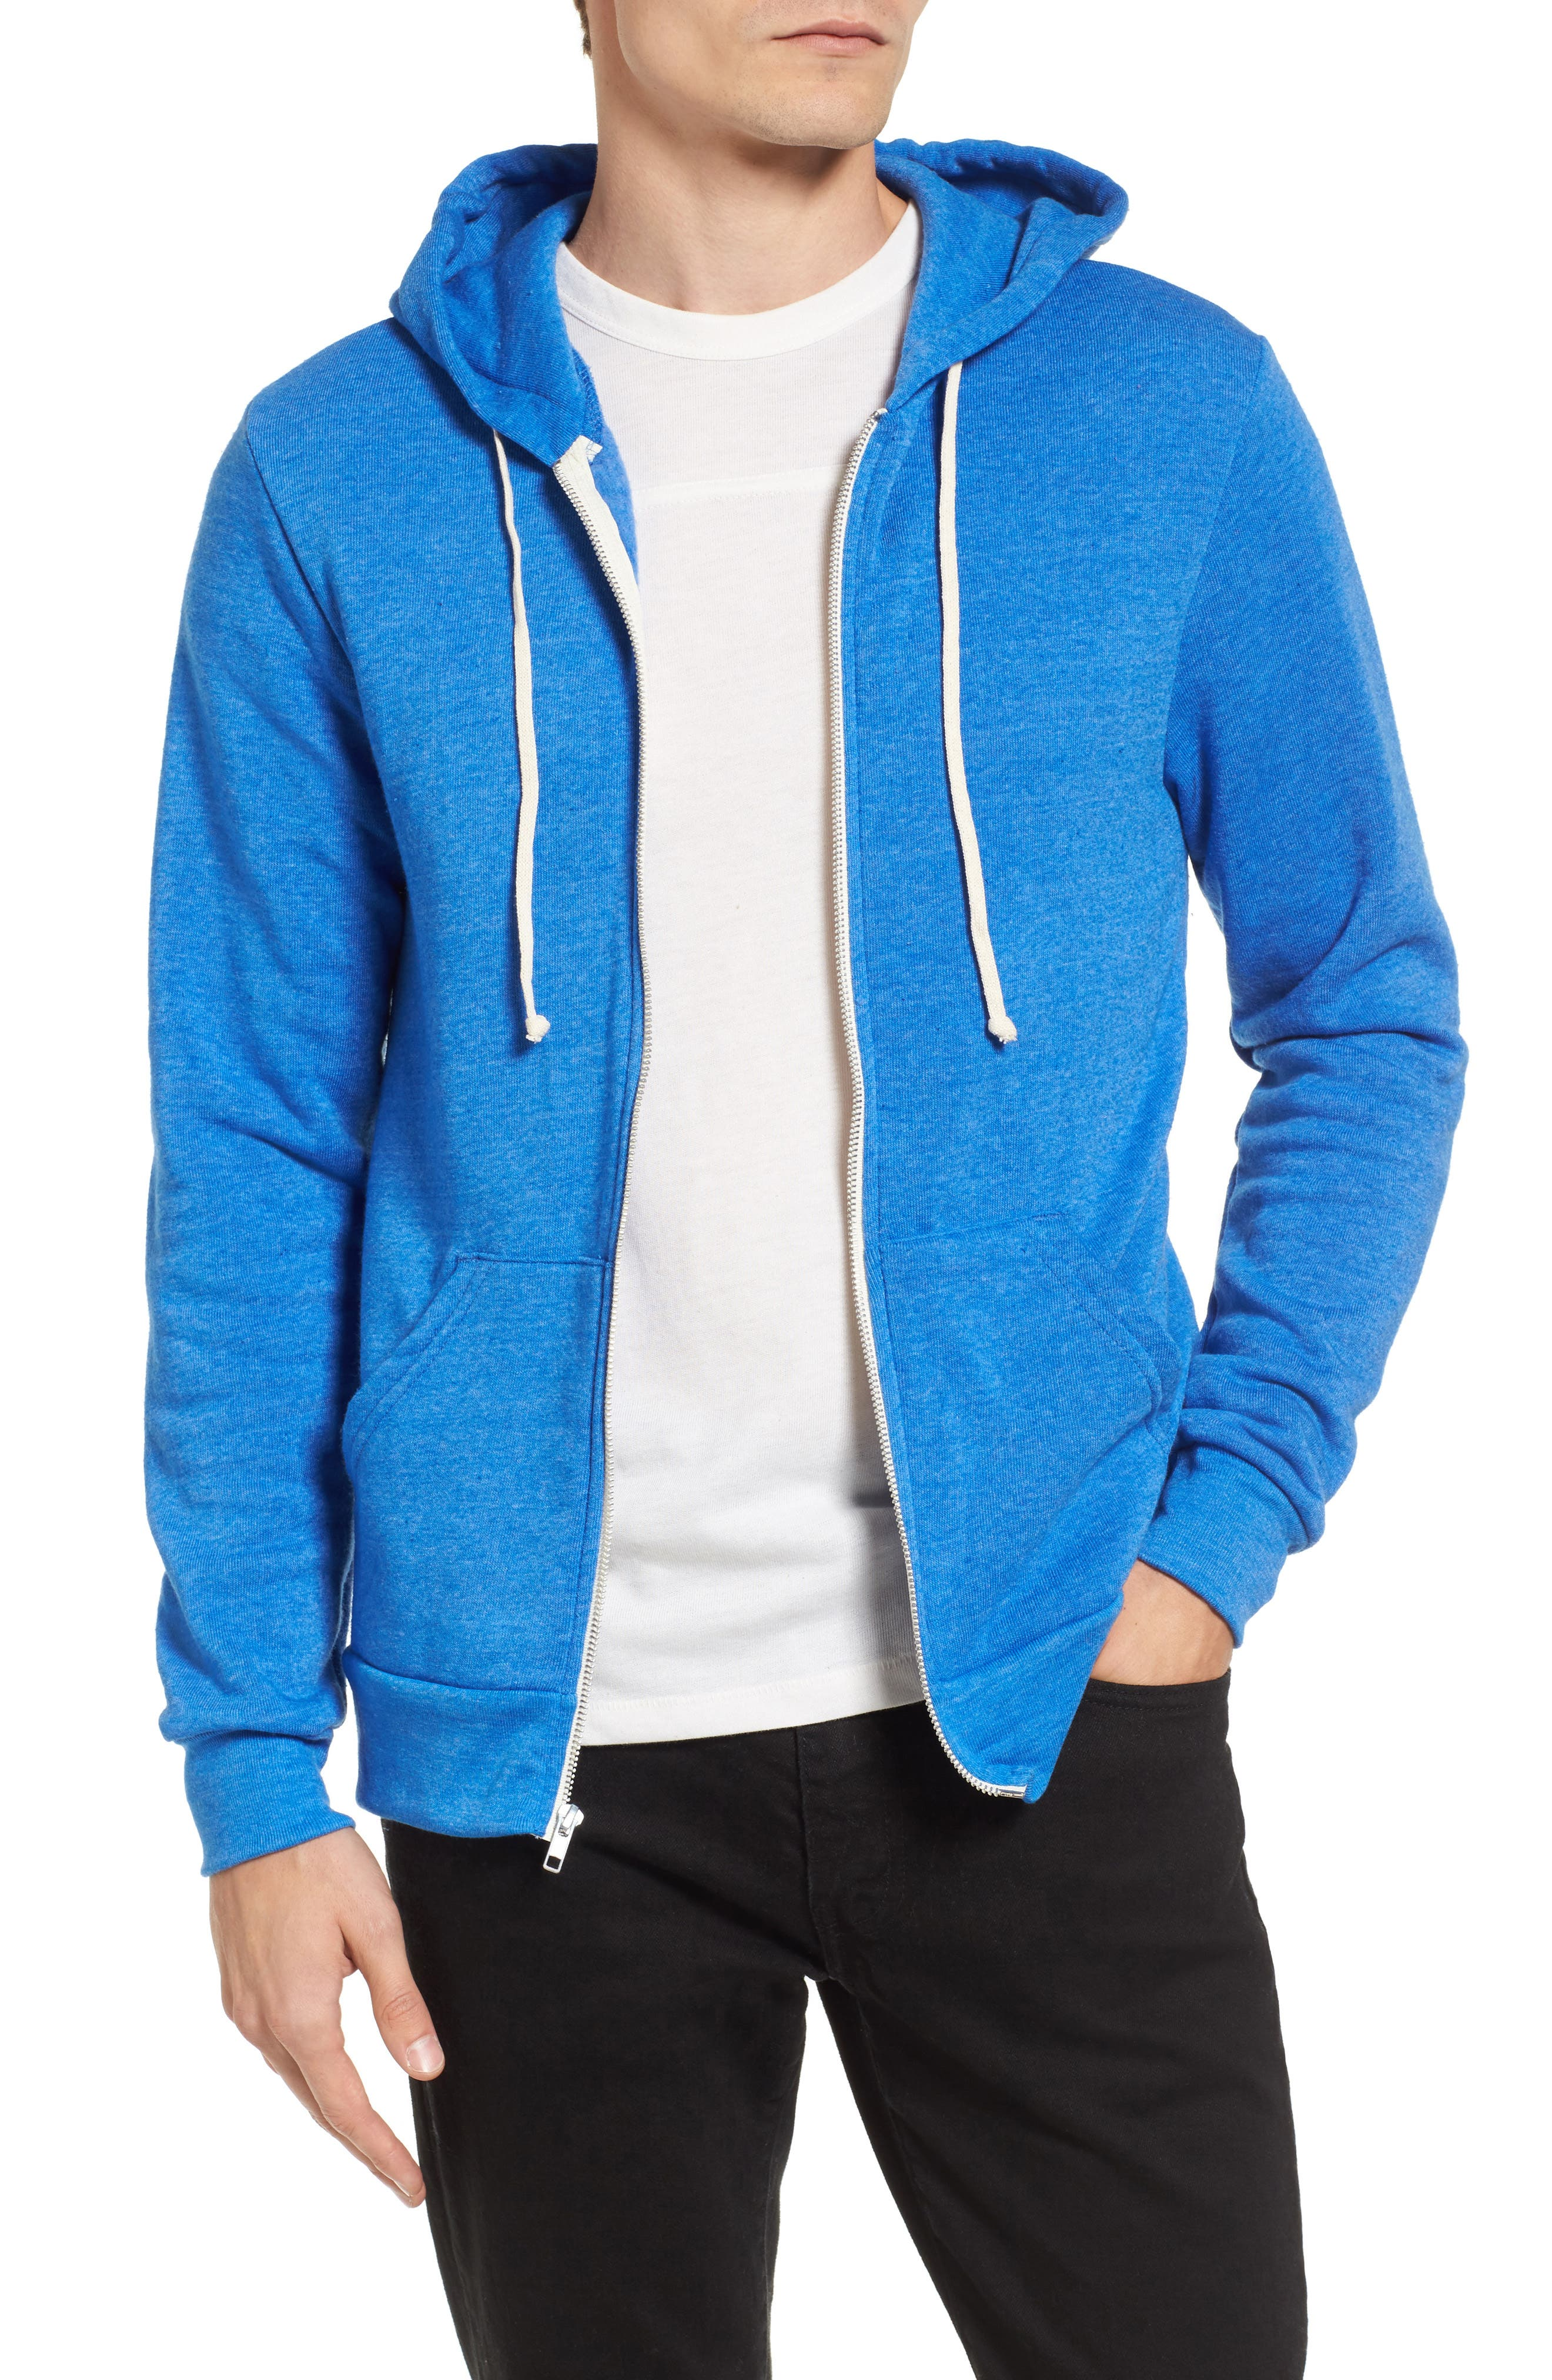 'Rocky' Trim Fit Hoodie,                             Main thumbnail 1, color,                             Eco True Pacific Blue